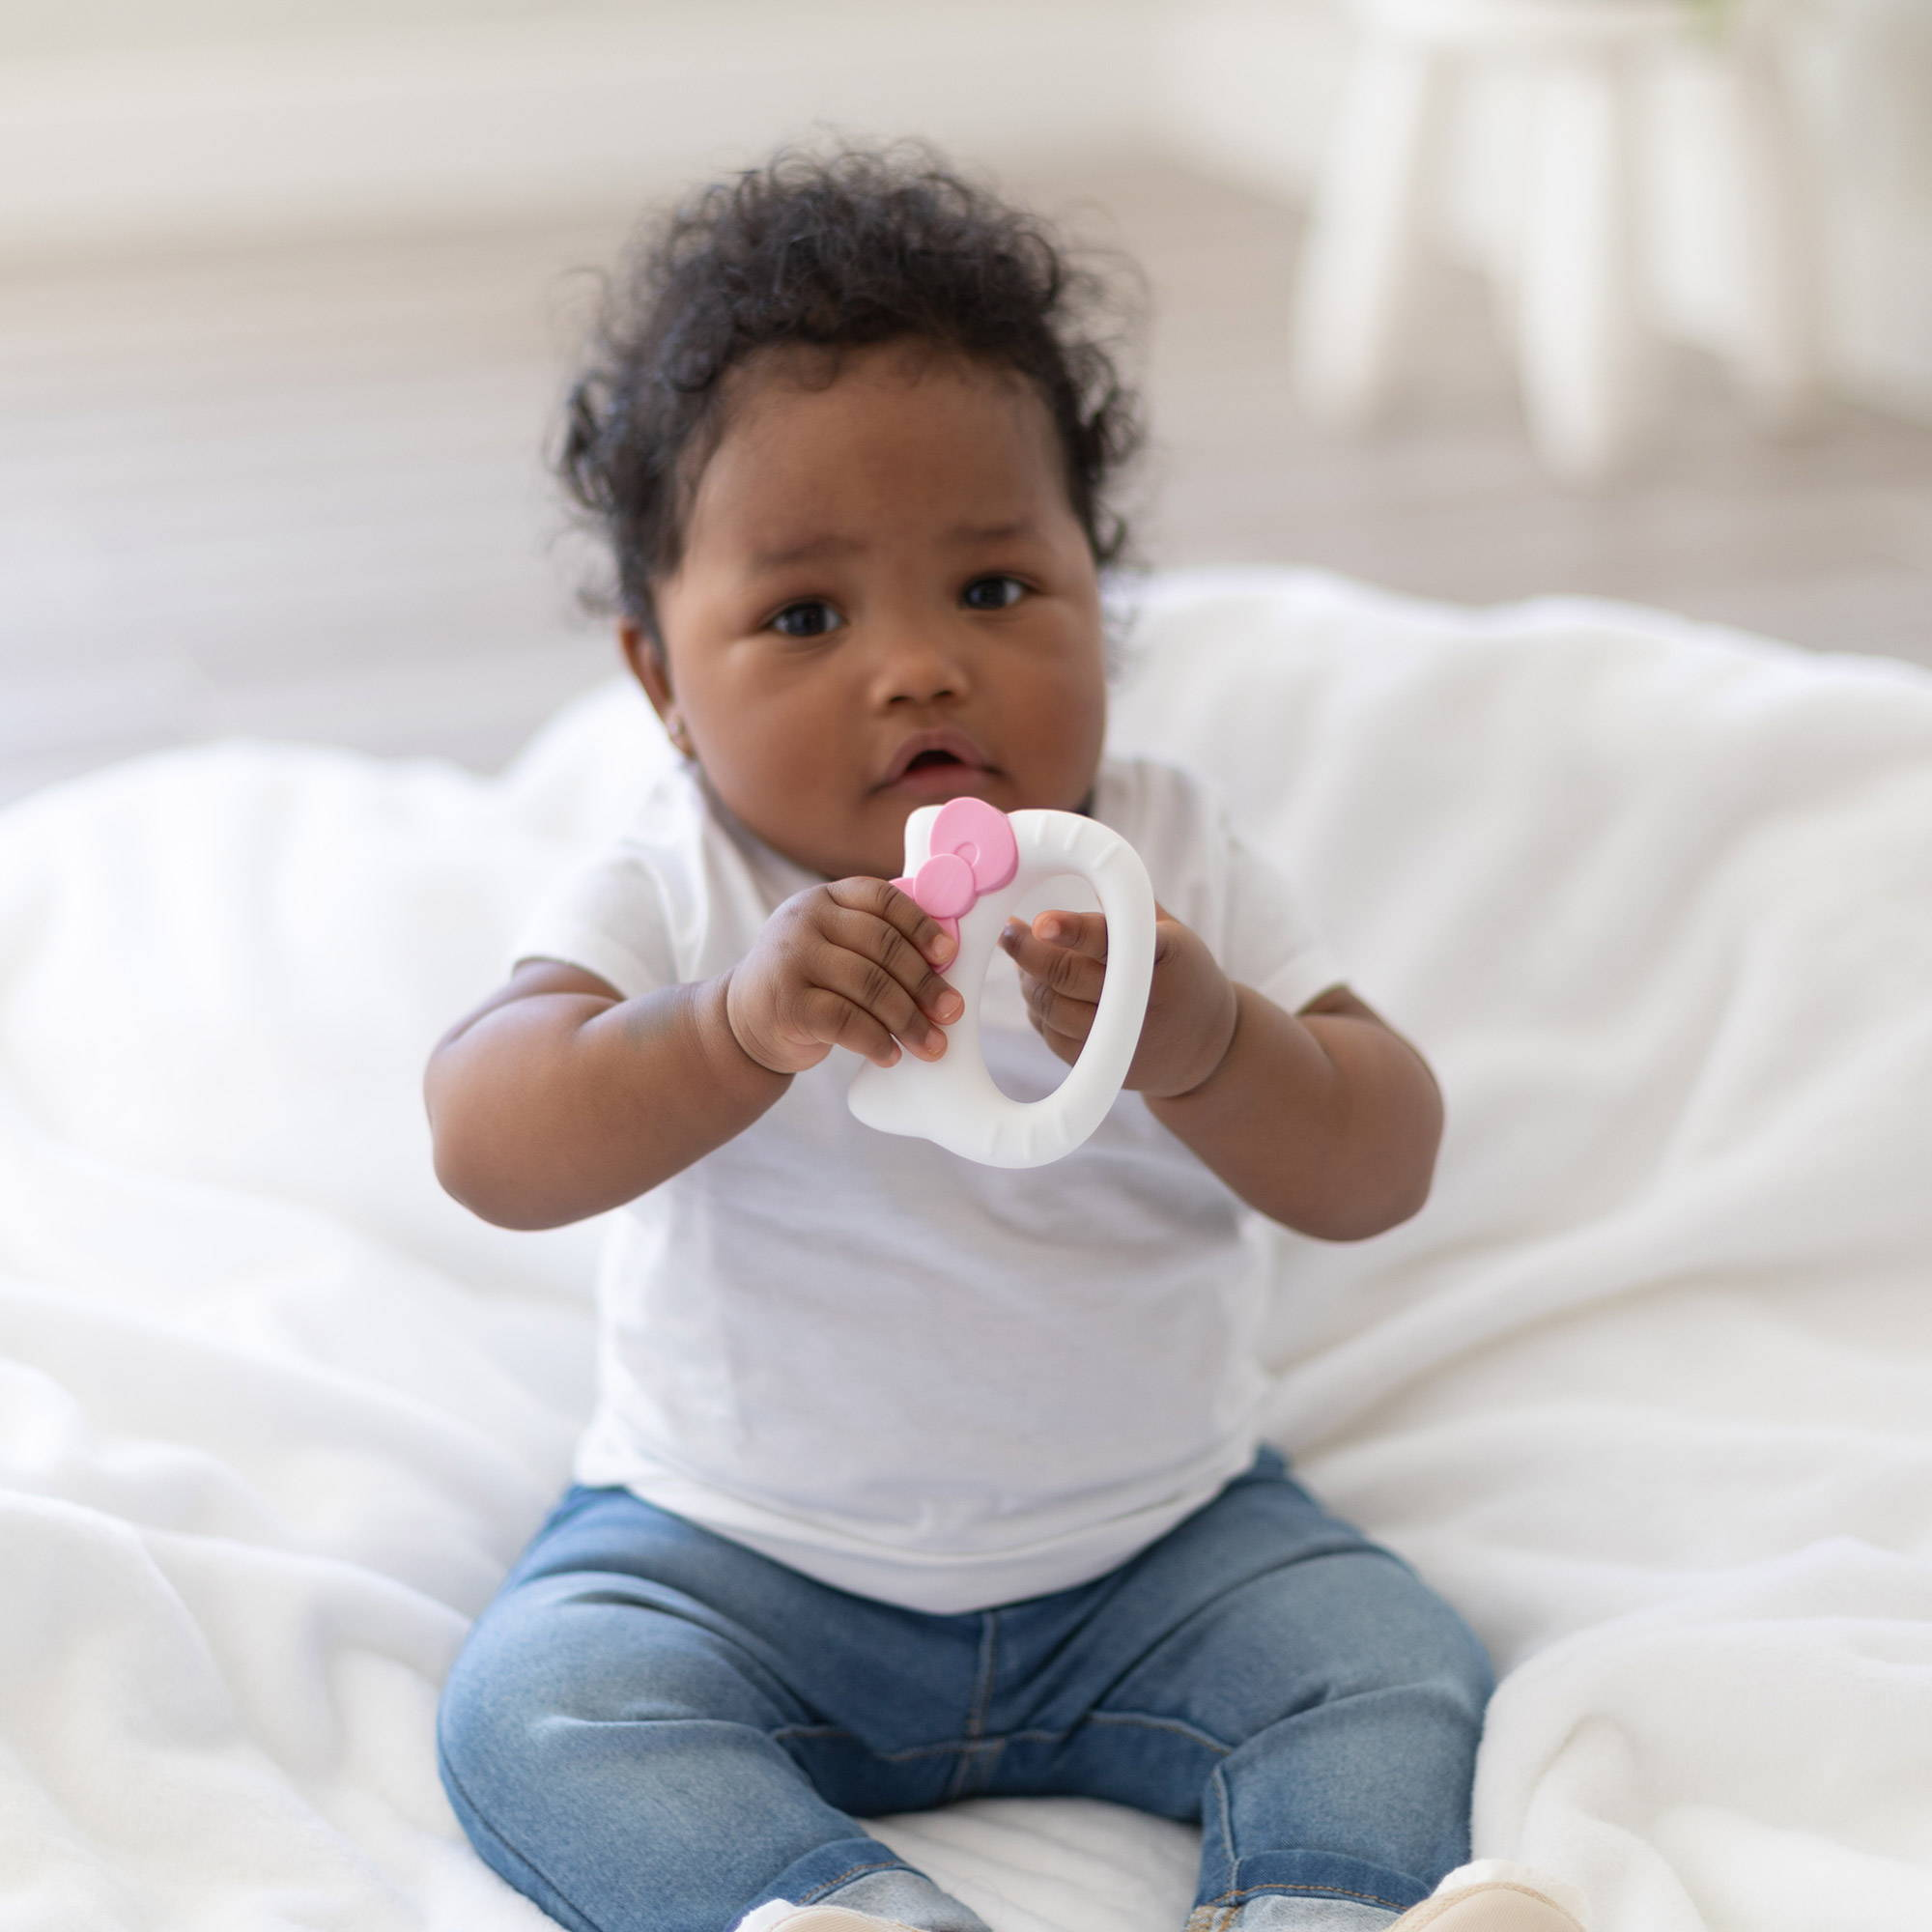 baby holding hello kitty silicone teething toy